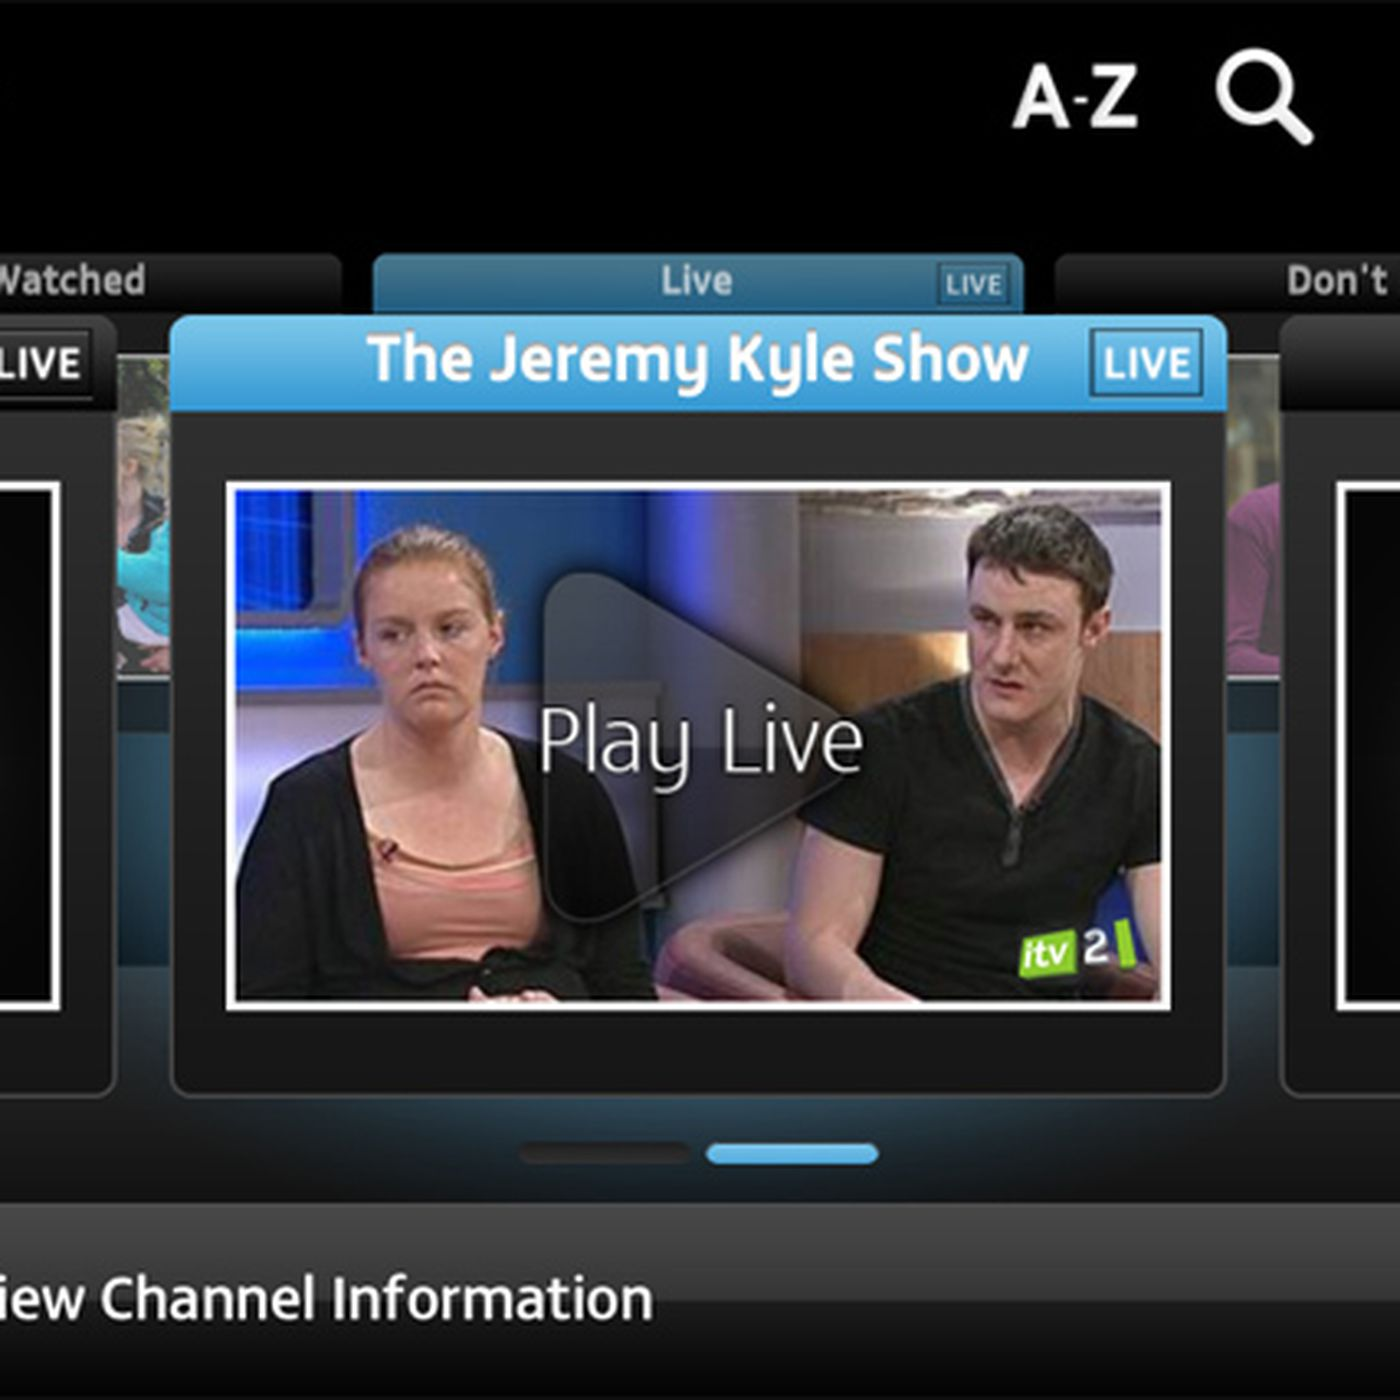 ITV adds live streaming and AirPlay Mirroring to iOS app